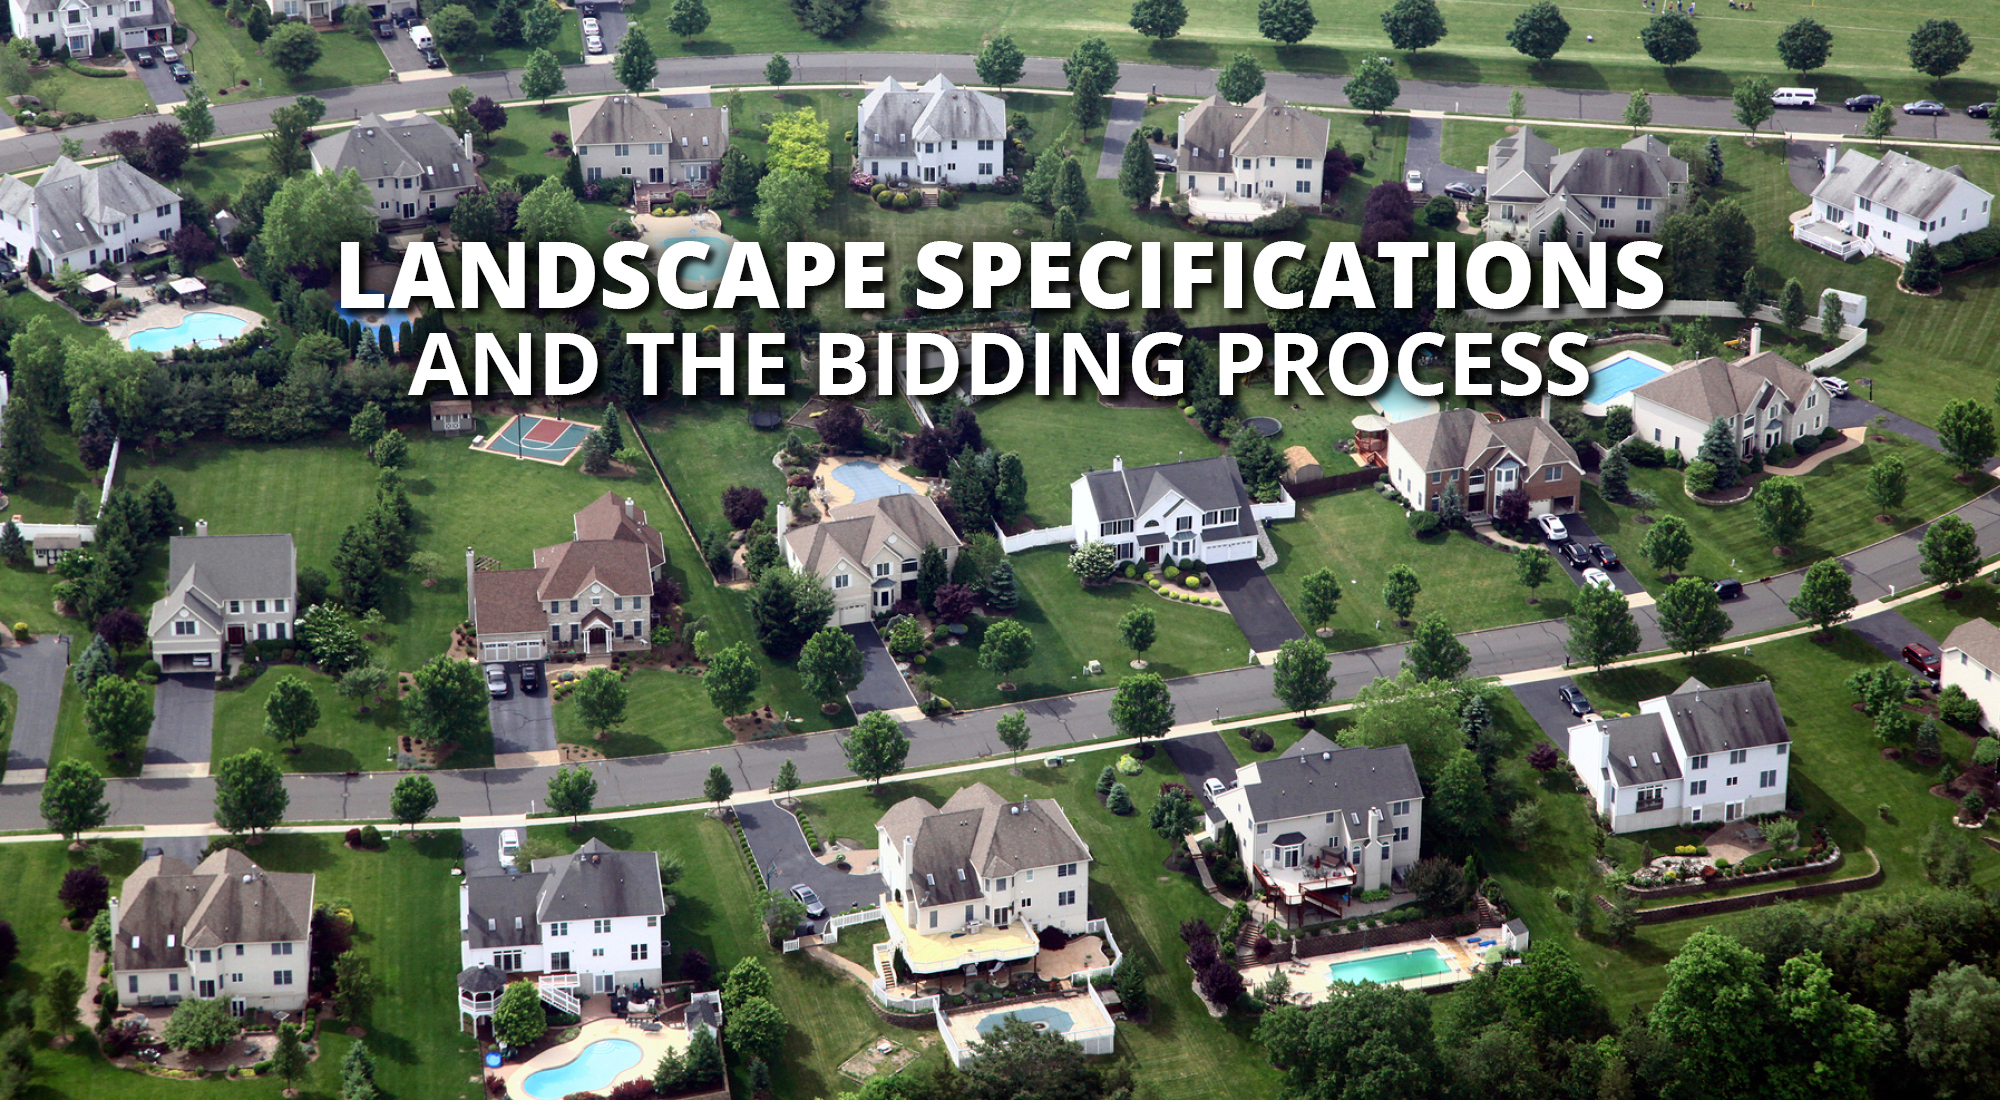 HOA Landscape Specifications and Bidding